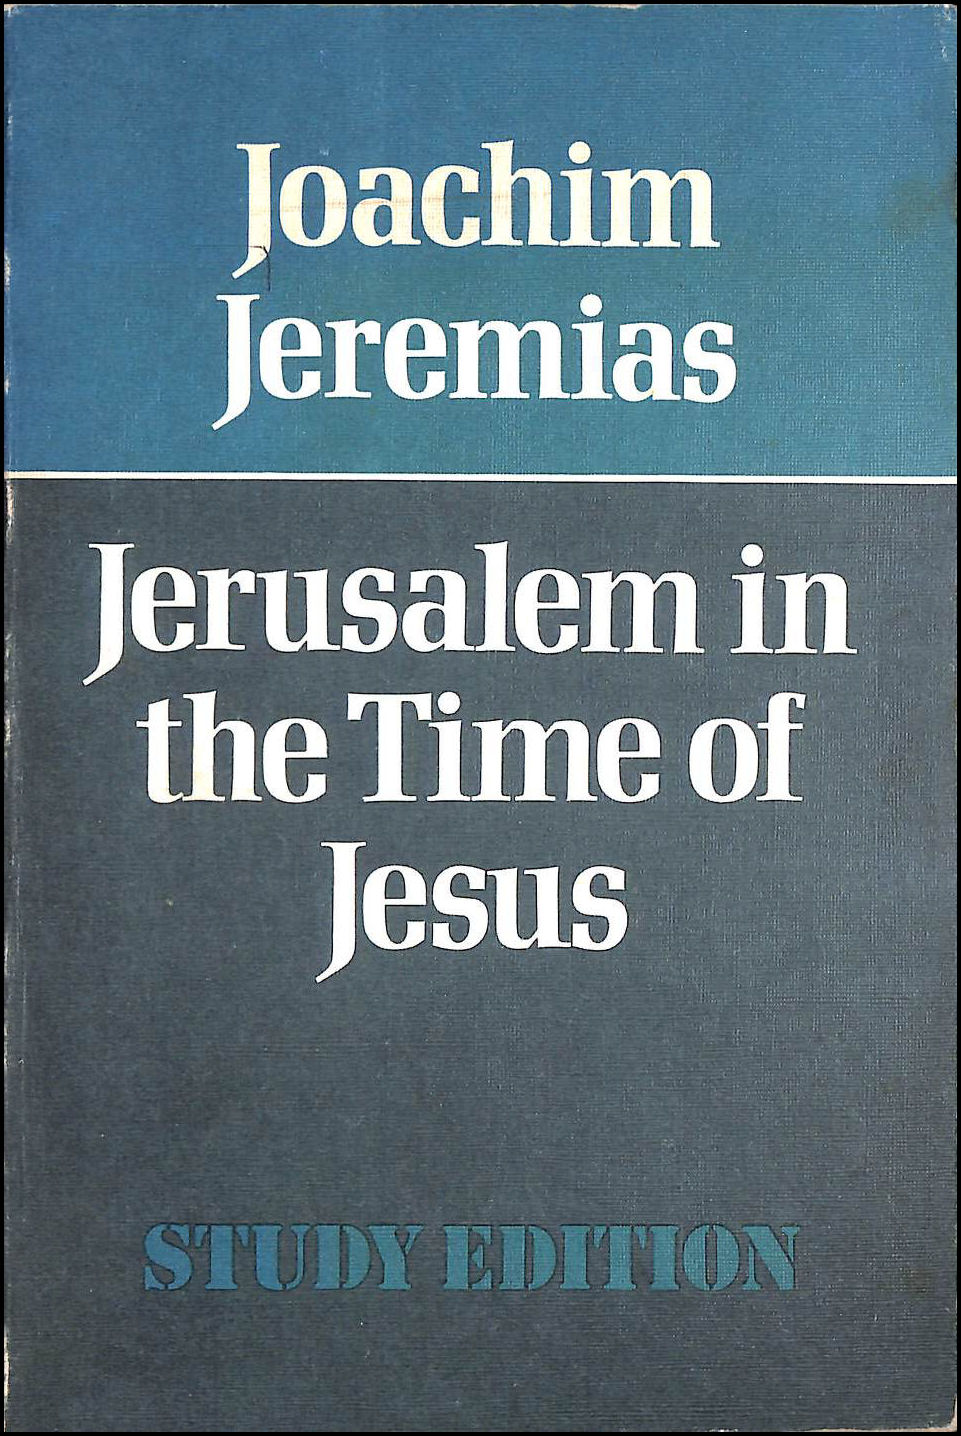 Jerusalem in the Time of Jesus: An Investigation Into Economic and Social Conditions During the New Testament Period, Jeremias, Joachim